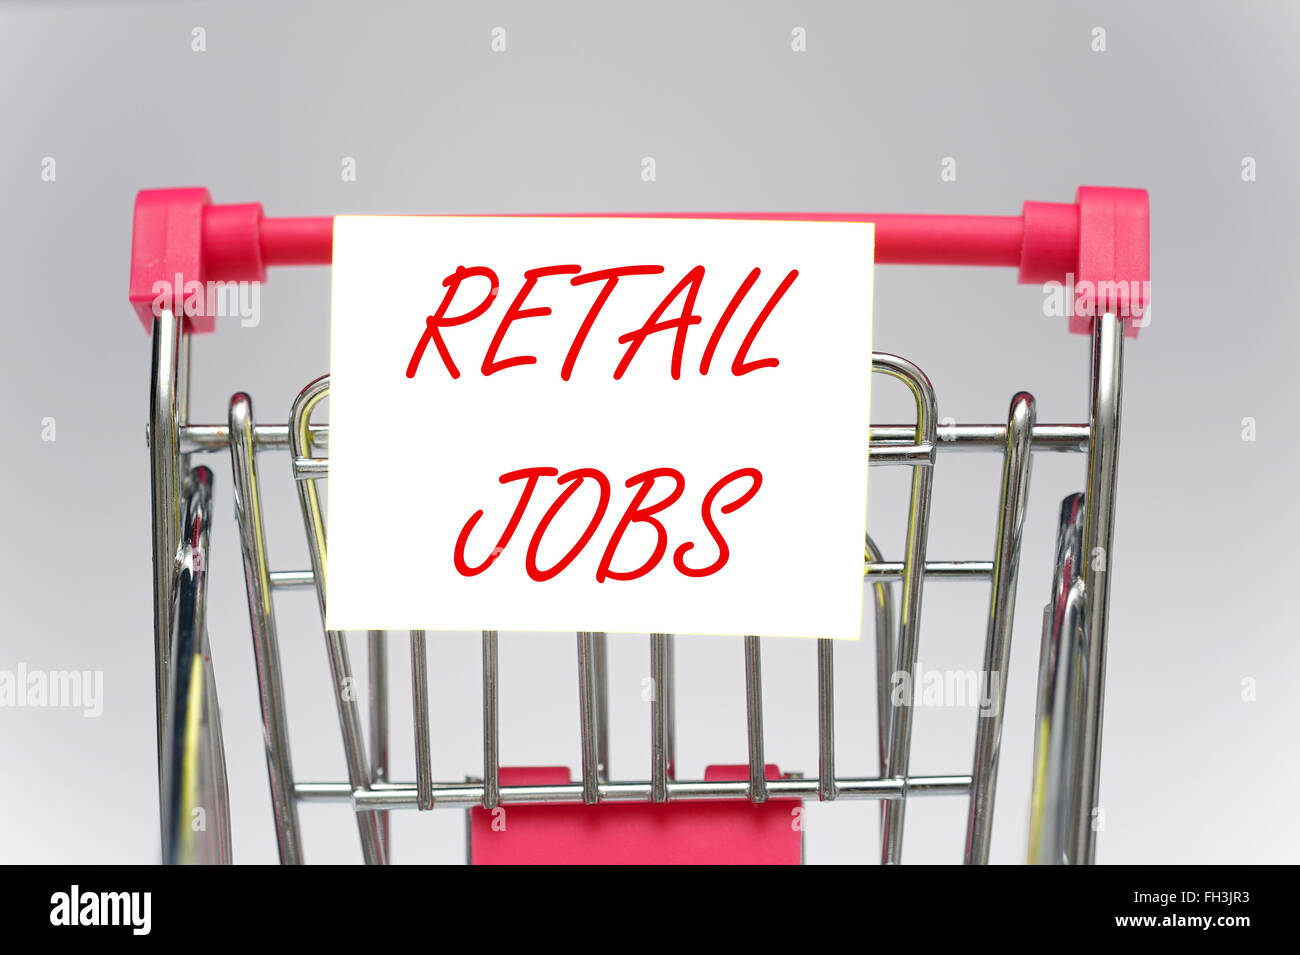 A miniature shopping trolley with retail jobs sign on - Stock Image